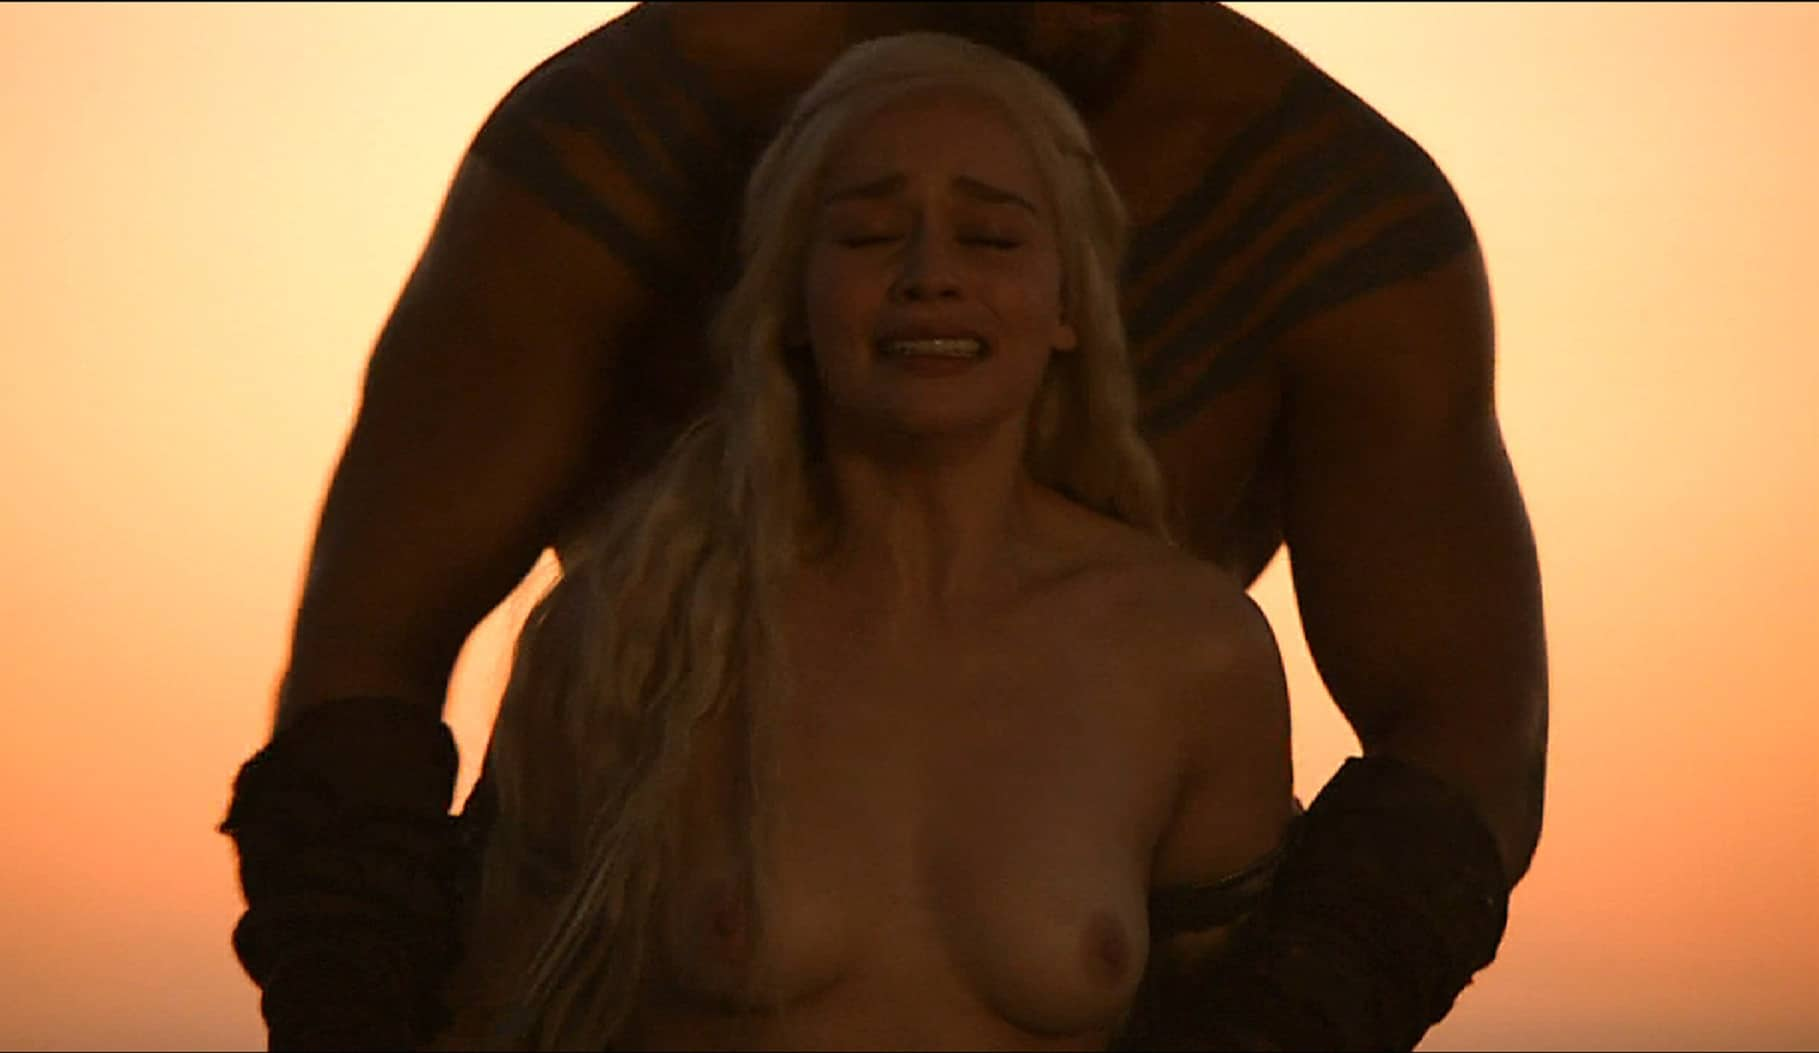 celeb emilia clarke nude pic of her getting fucked